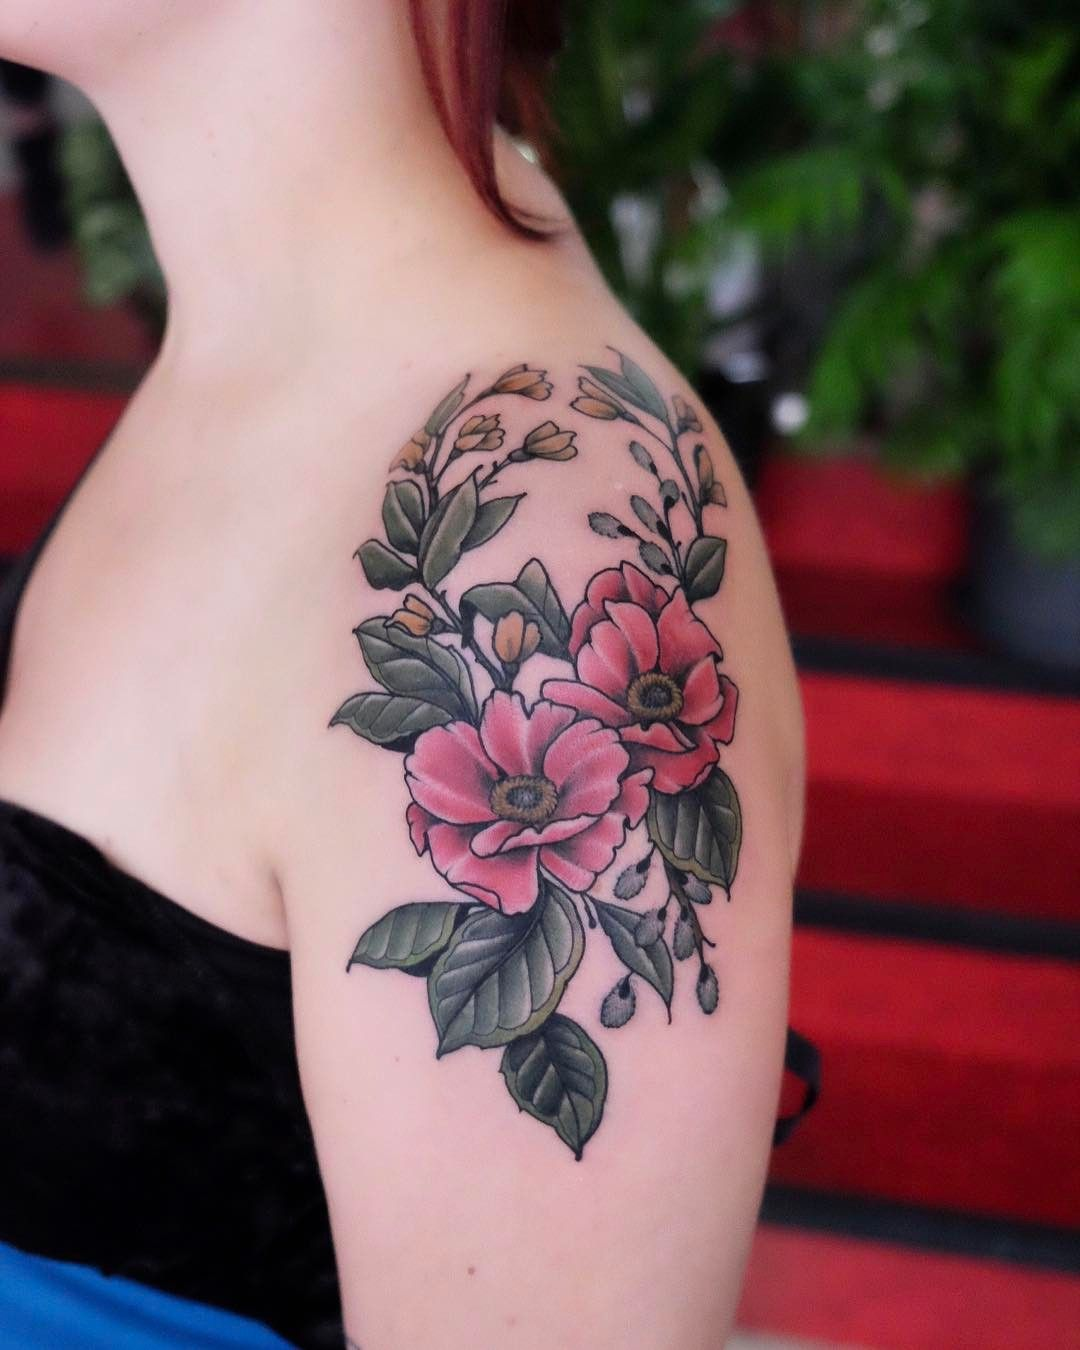 Beautiful Botanical Tattoos By Salem Witch Descendant: Flowers On Tine, Thanks! Done @salonserpenttattooparlour